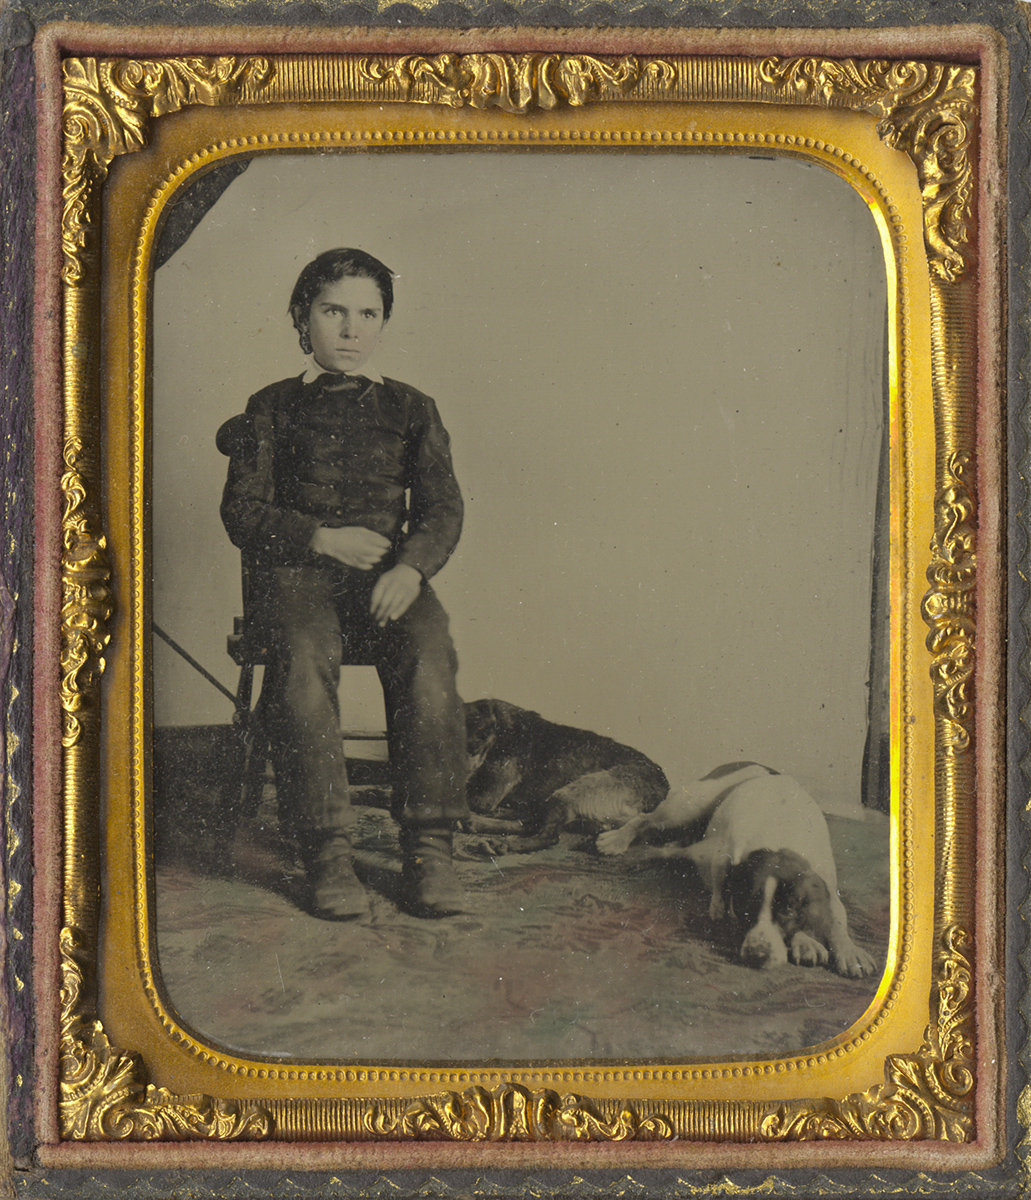 Portrait of a Seated Boy with Two Dogs Lying at His Feet